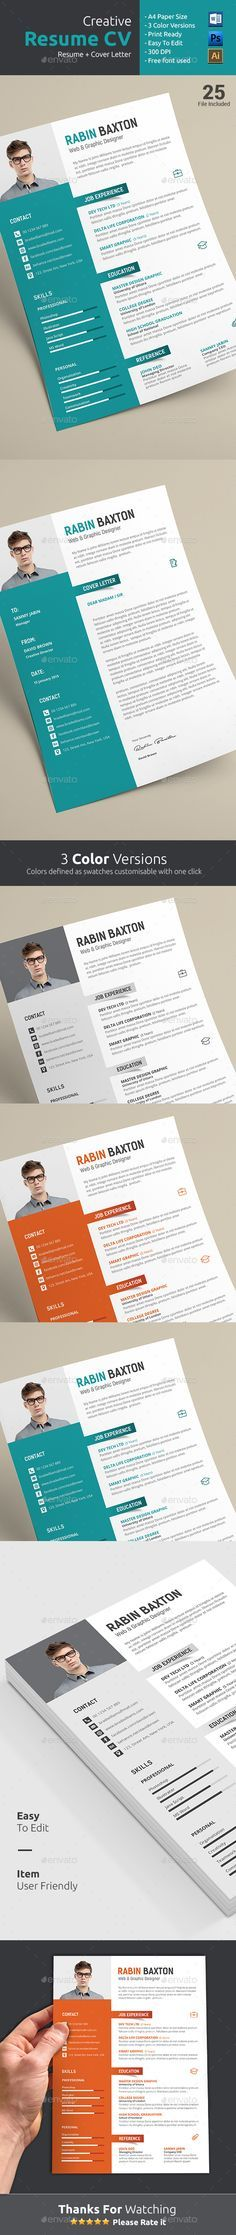 Flat Resume Set in 5 Variations by